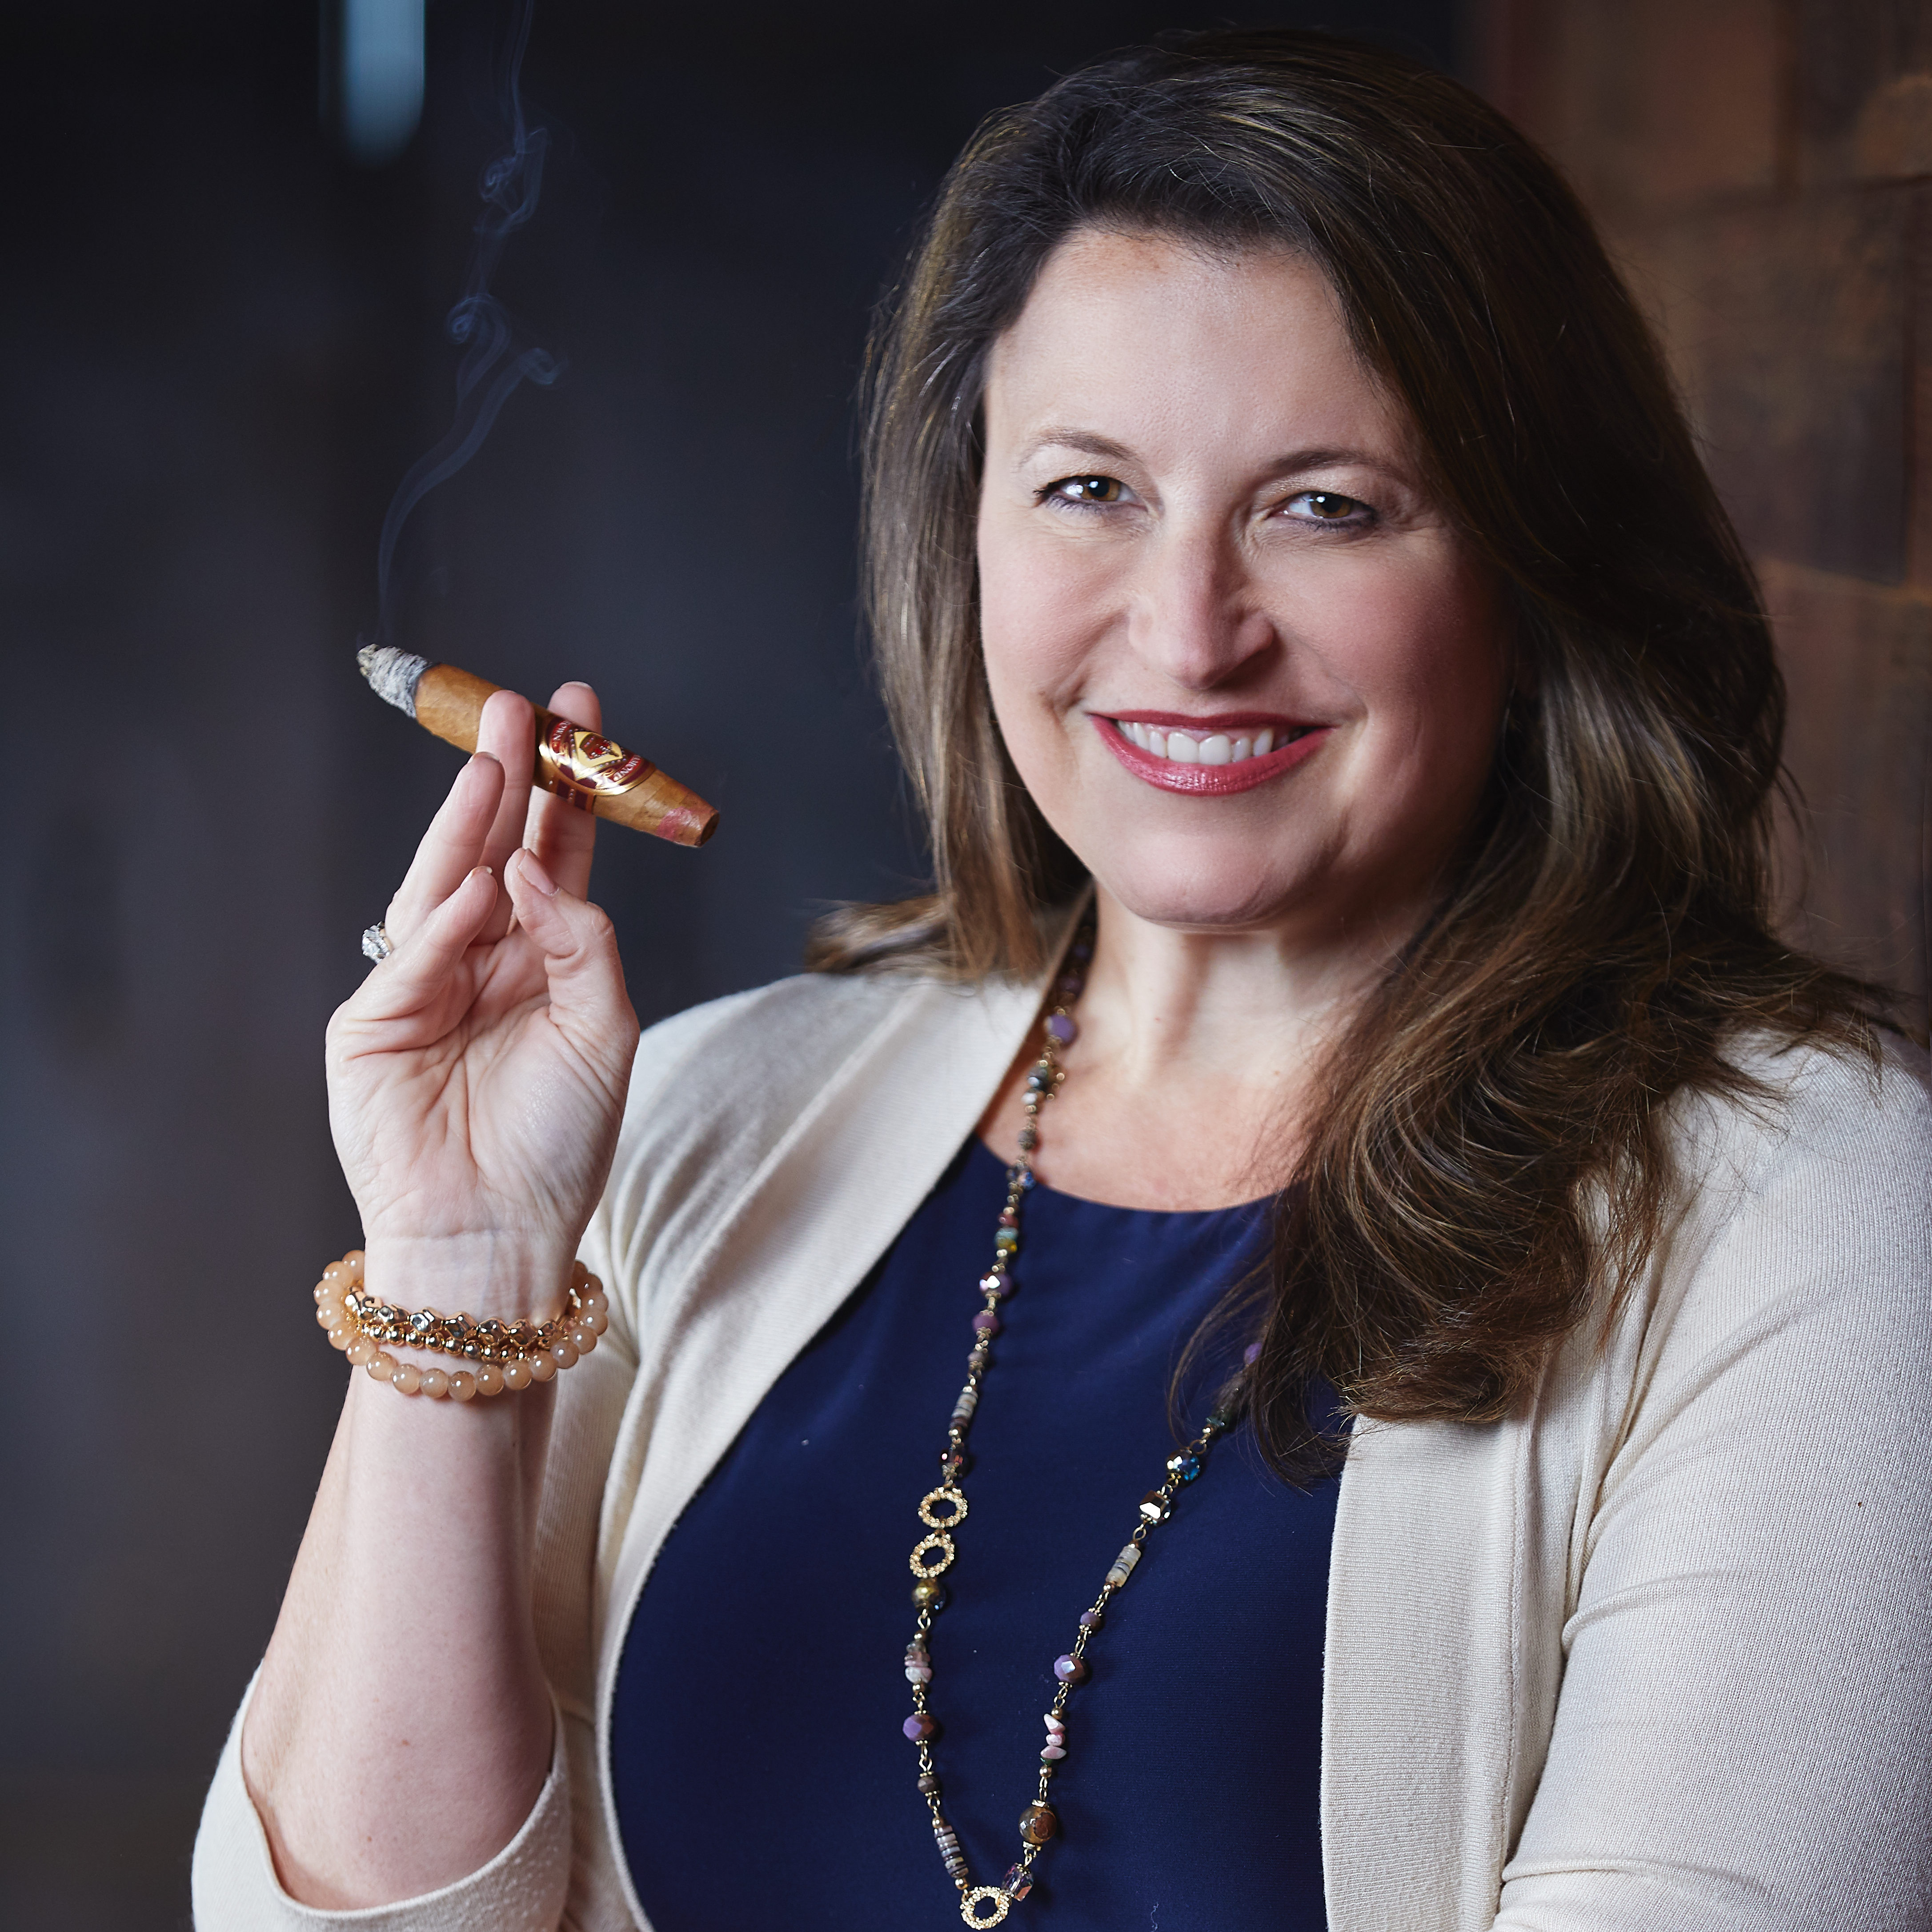 Cristal Blackwell-Lastra Holding Diamond Crown Cigar